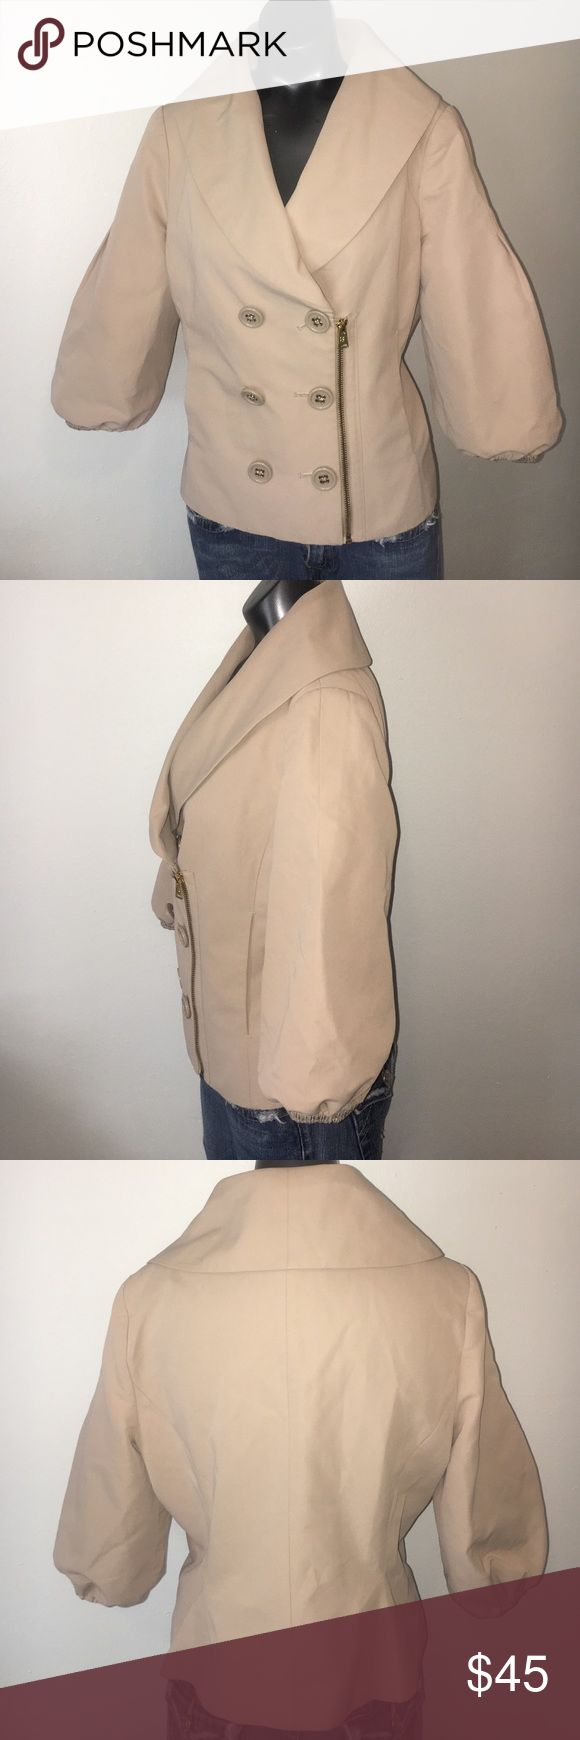 BCBGMAXAZRIA Jacket Size M Beige Solid Dry clean only Measurements Detailed measurements are not available for this item. Materials 59% Cotton, 41% Polyester BCBGMaxAzria Jackets & Coats